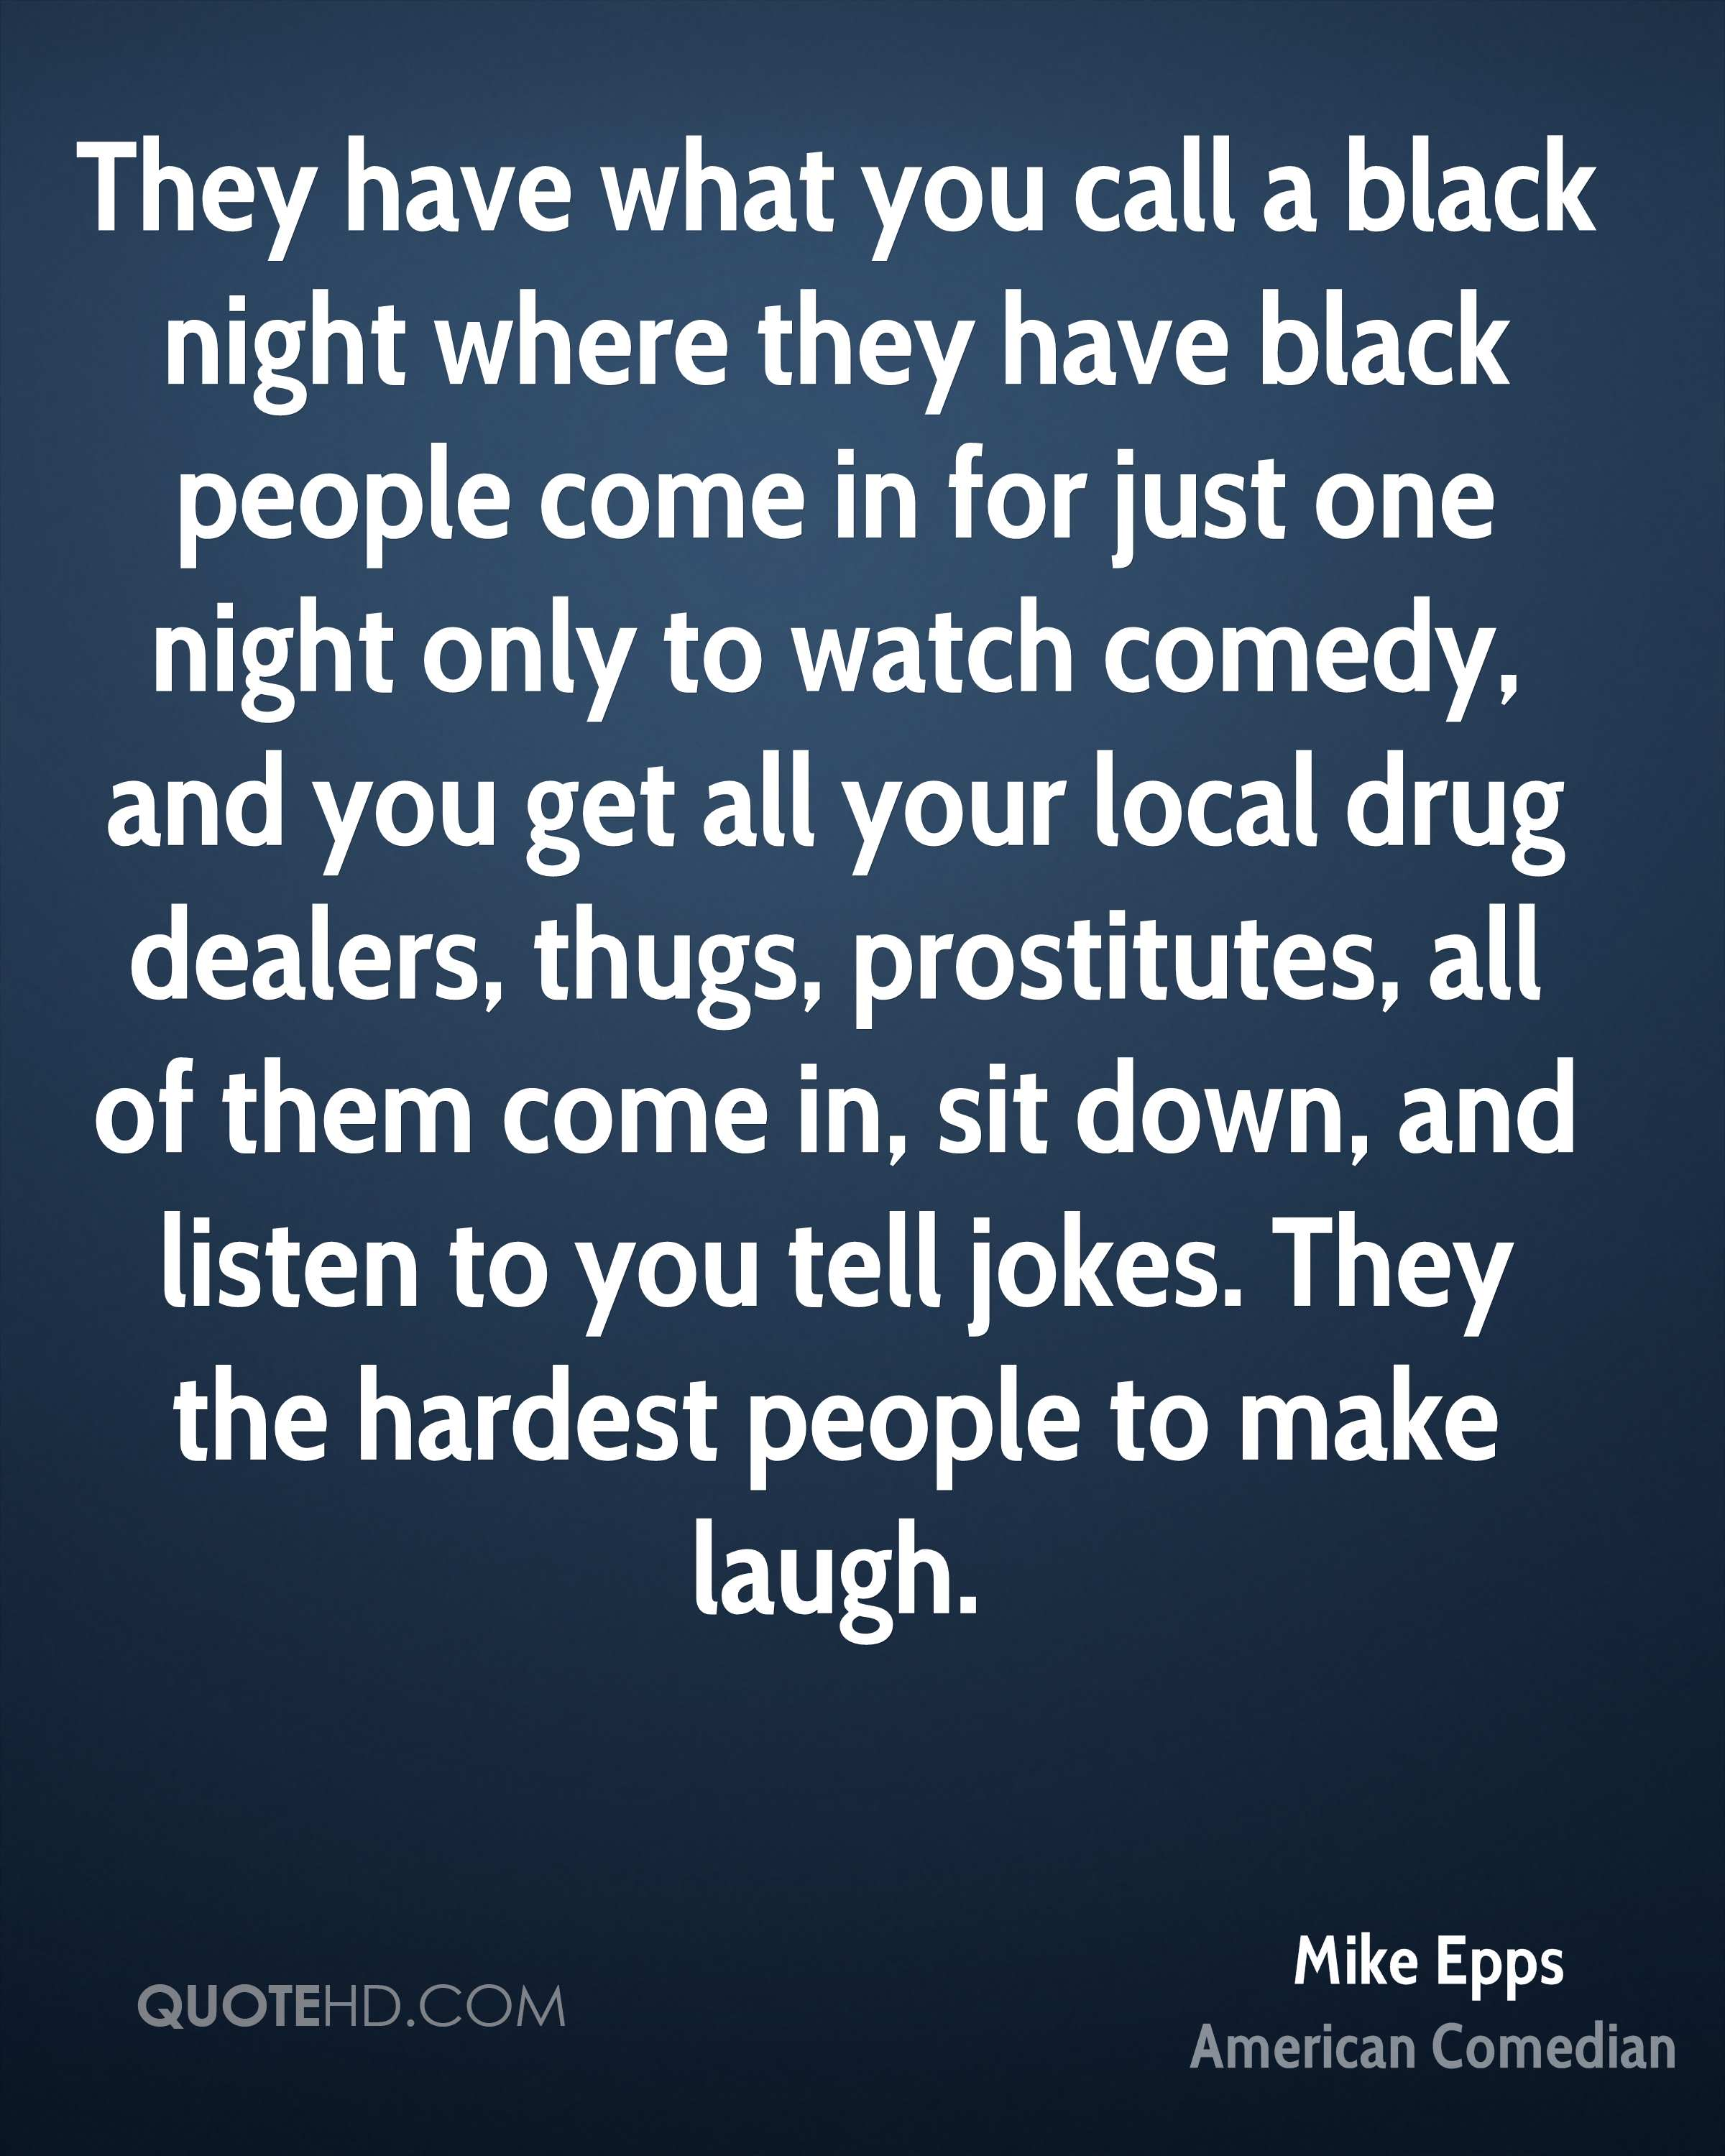 They have what you call a black night where they have black people come in for just one night only to watch comedy, and you get all your local drug dealers, thugs, prostitutes, all of them come in, sit down, and listen to you tell jokes. They the hardest people to make laugh.